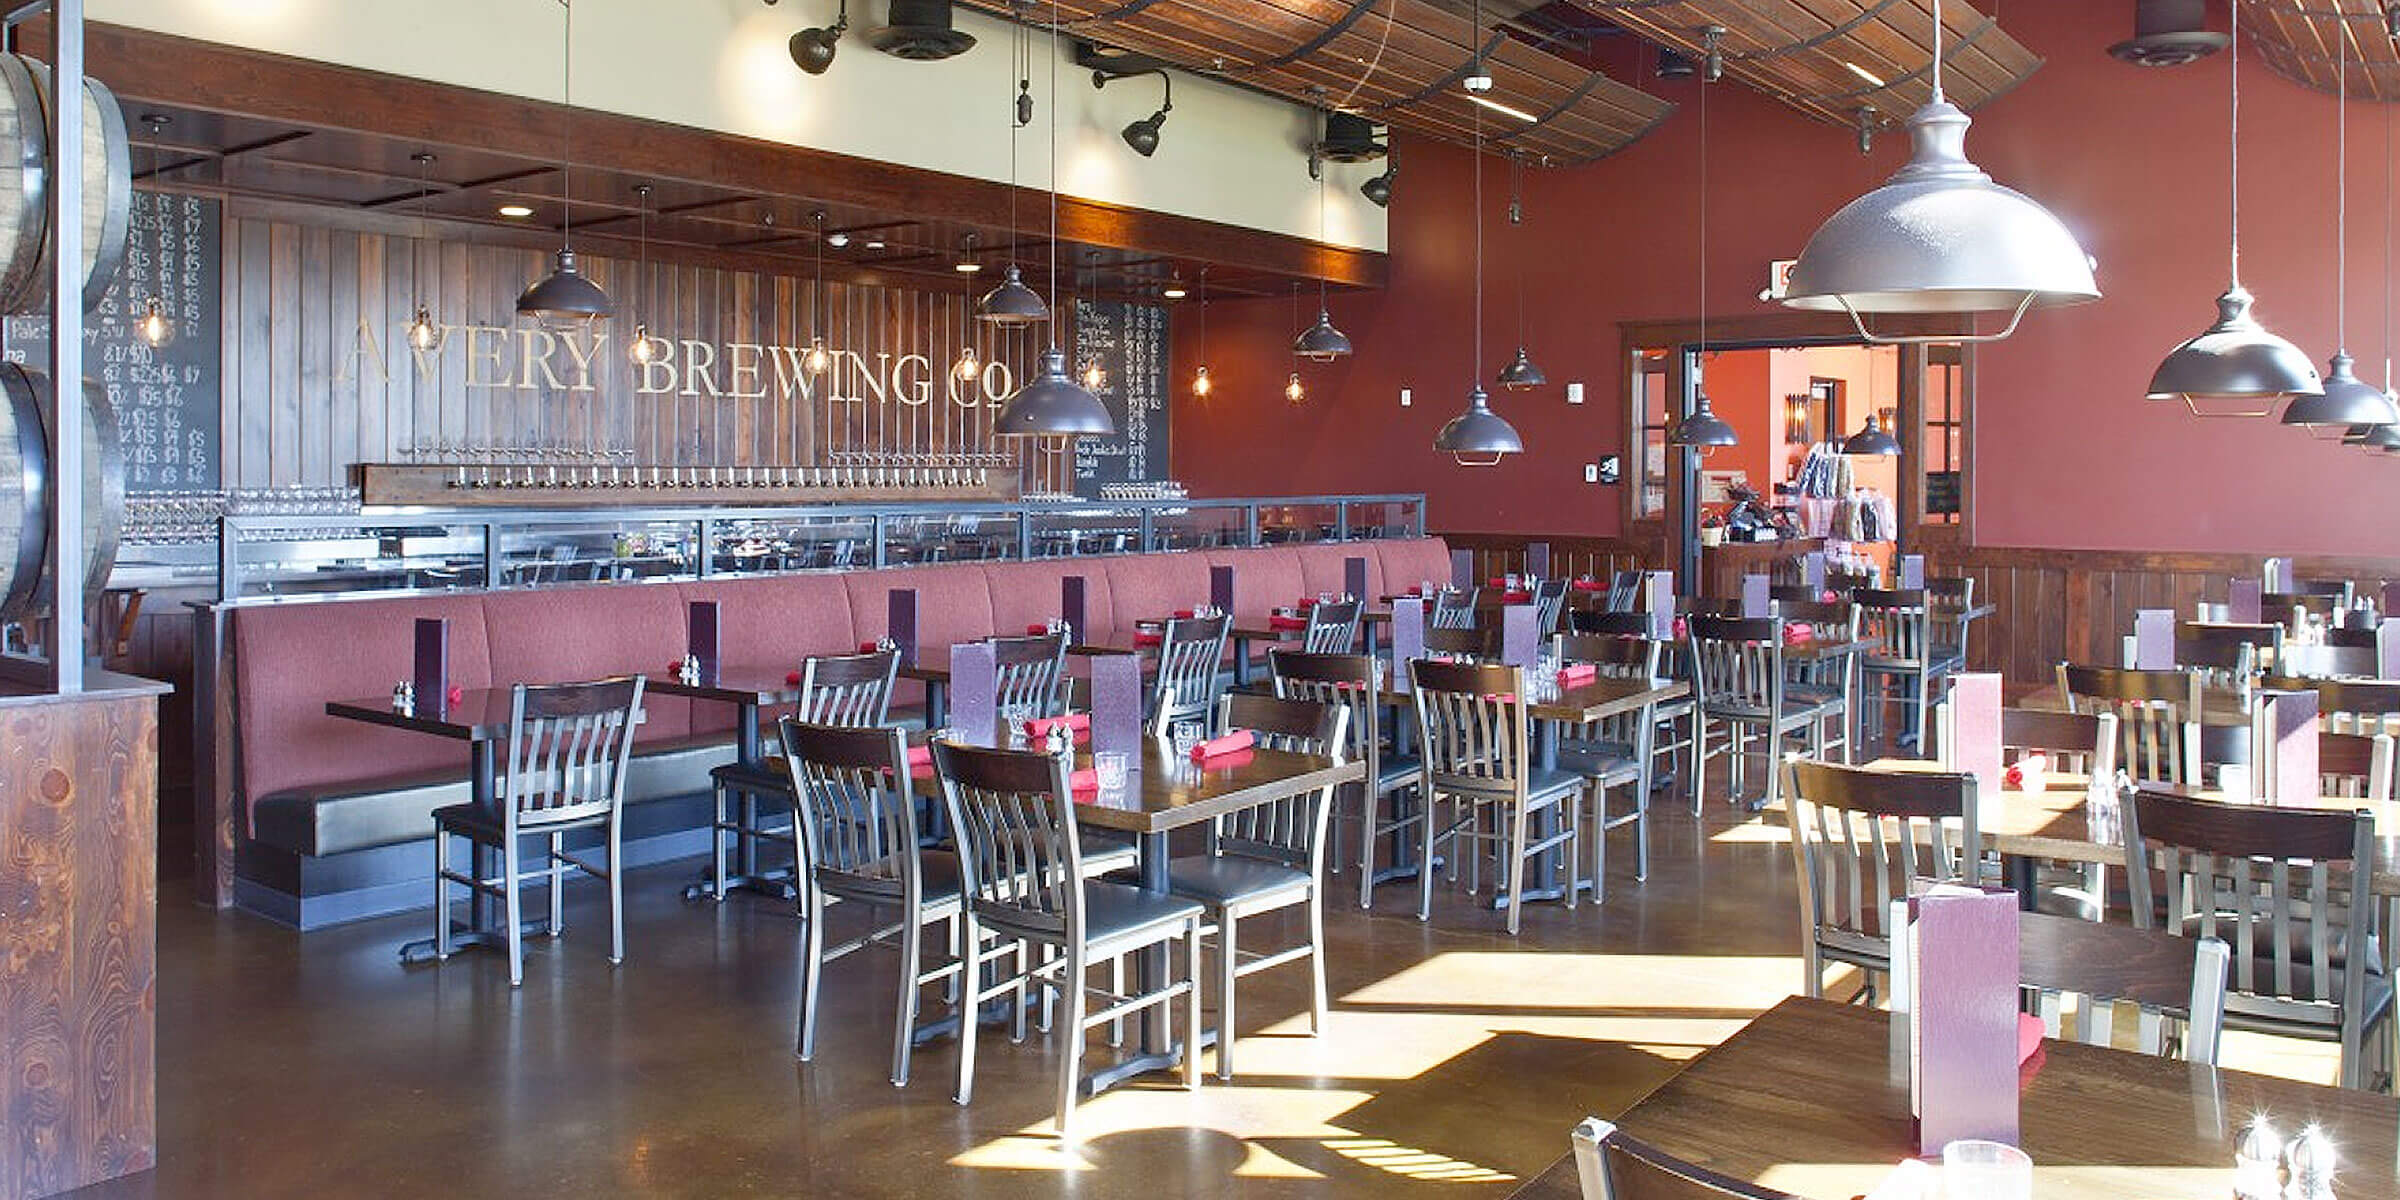 Inside the taproom at Avery Brewing Co. in Boulder, Colorado